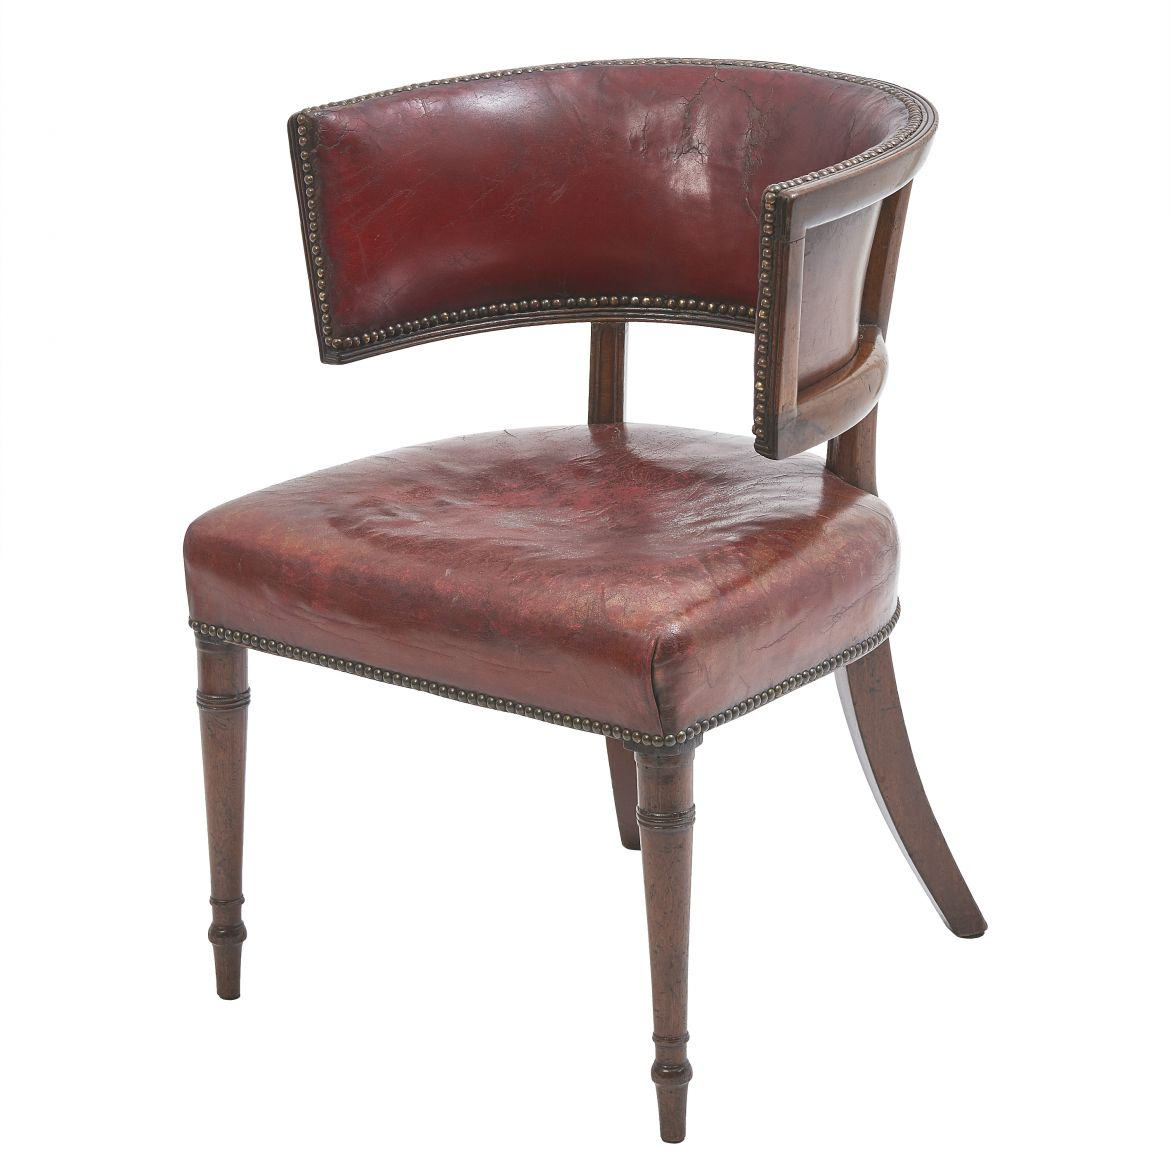 William IV Klismos Style Desk Chair